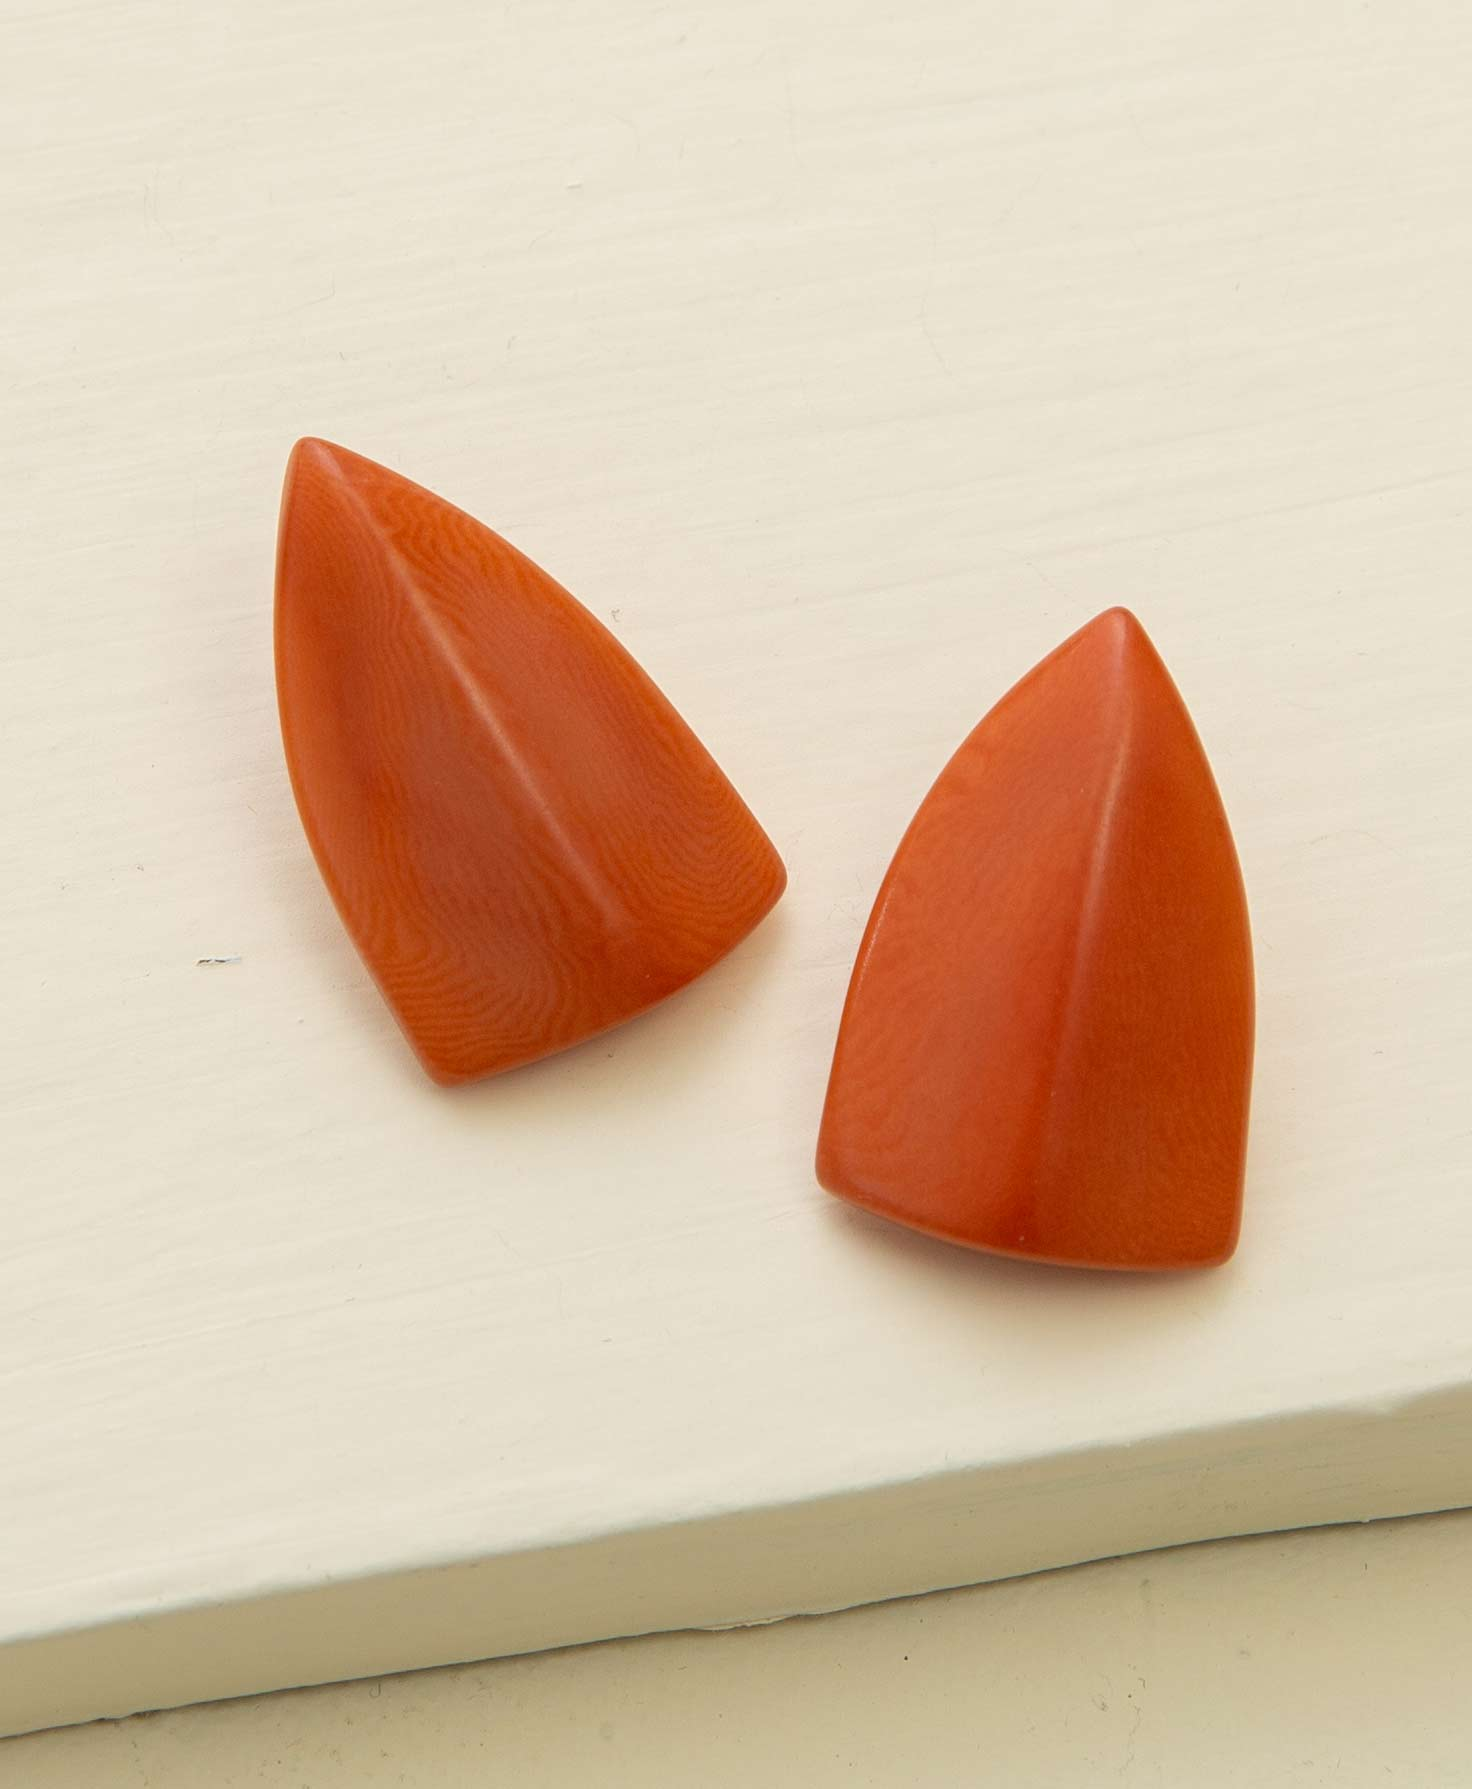 The Shield Earrings lay on a white platform. They are made from smooth carved tagua seed in a burnt orange shade. The seed is carved into a shield-like shape that comes to a point at the top of the earring.